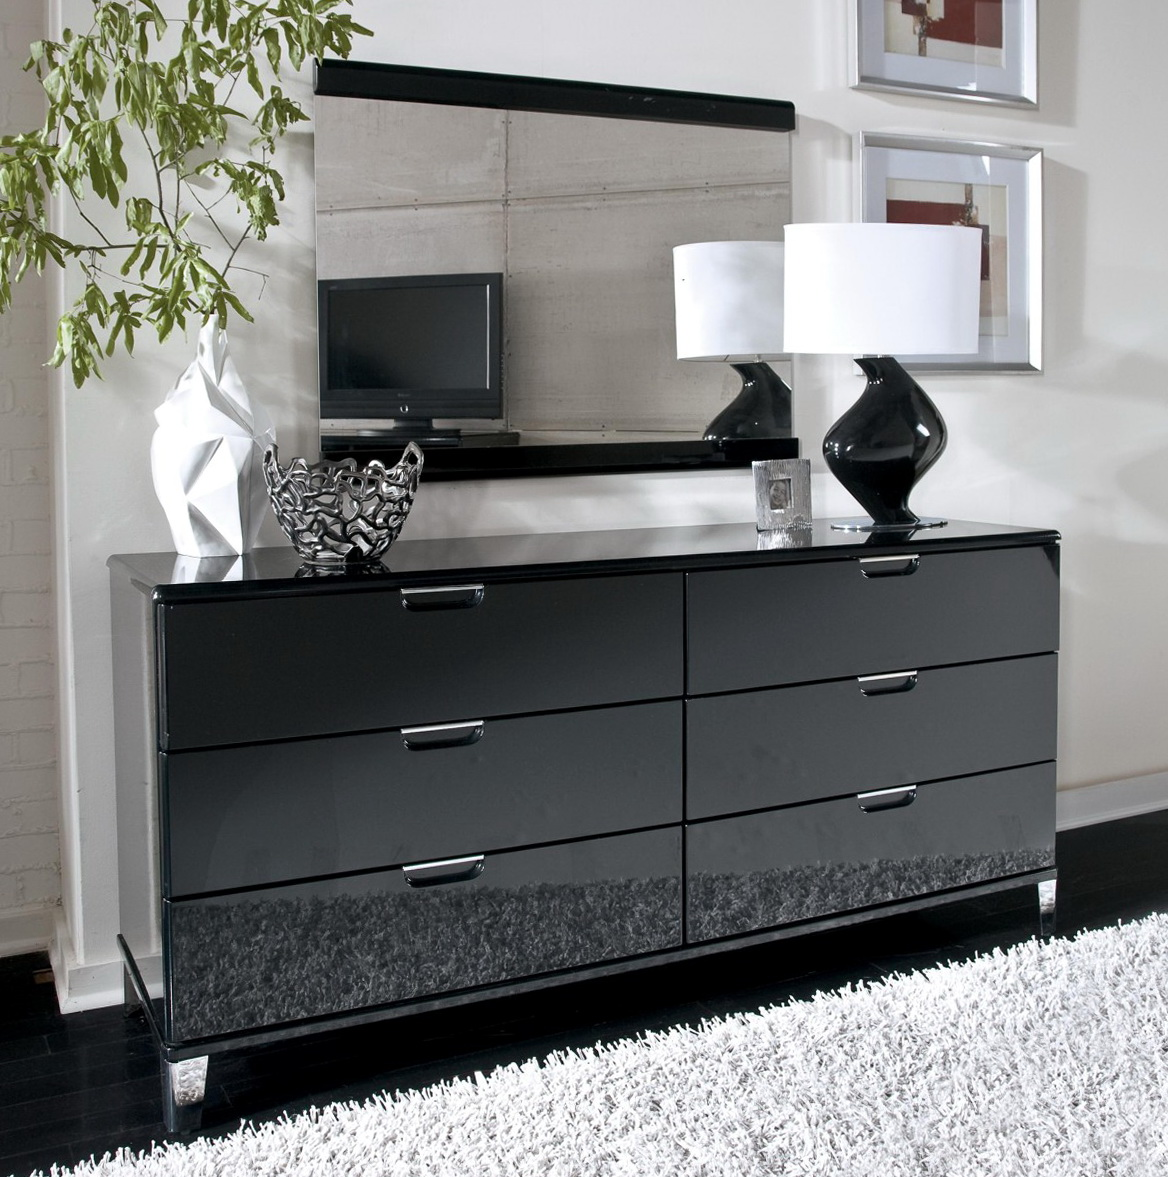 Mirrored furniture sale ebay home design ideas for Ebay couches for sale